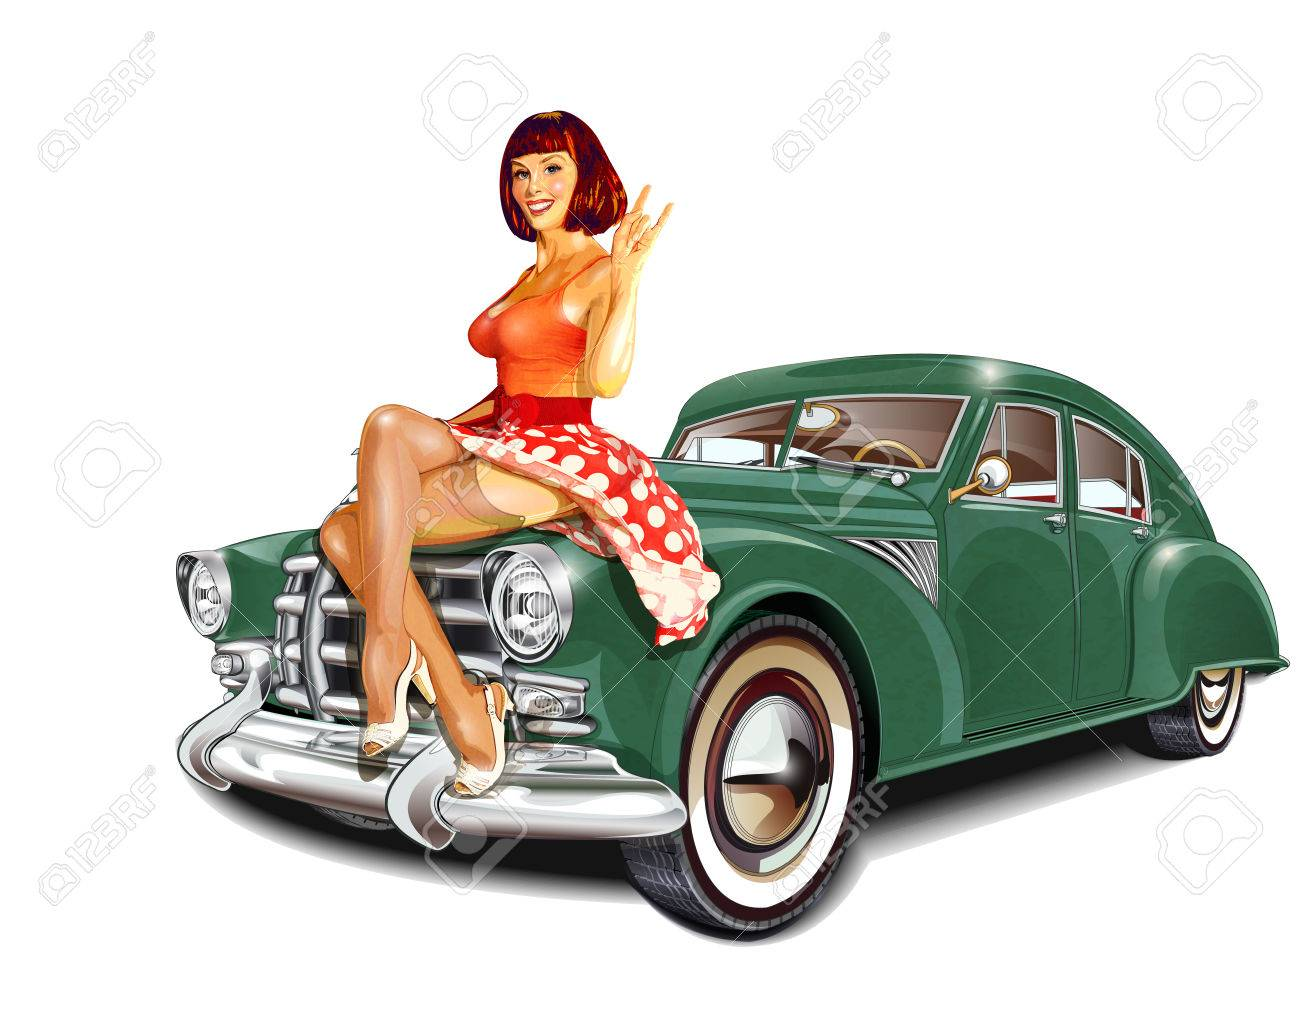 Pin-up girl and retro car isolated on white background - 71945621